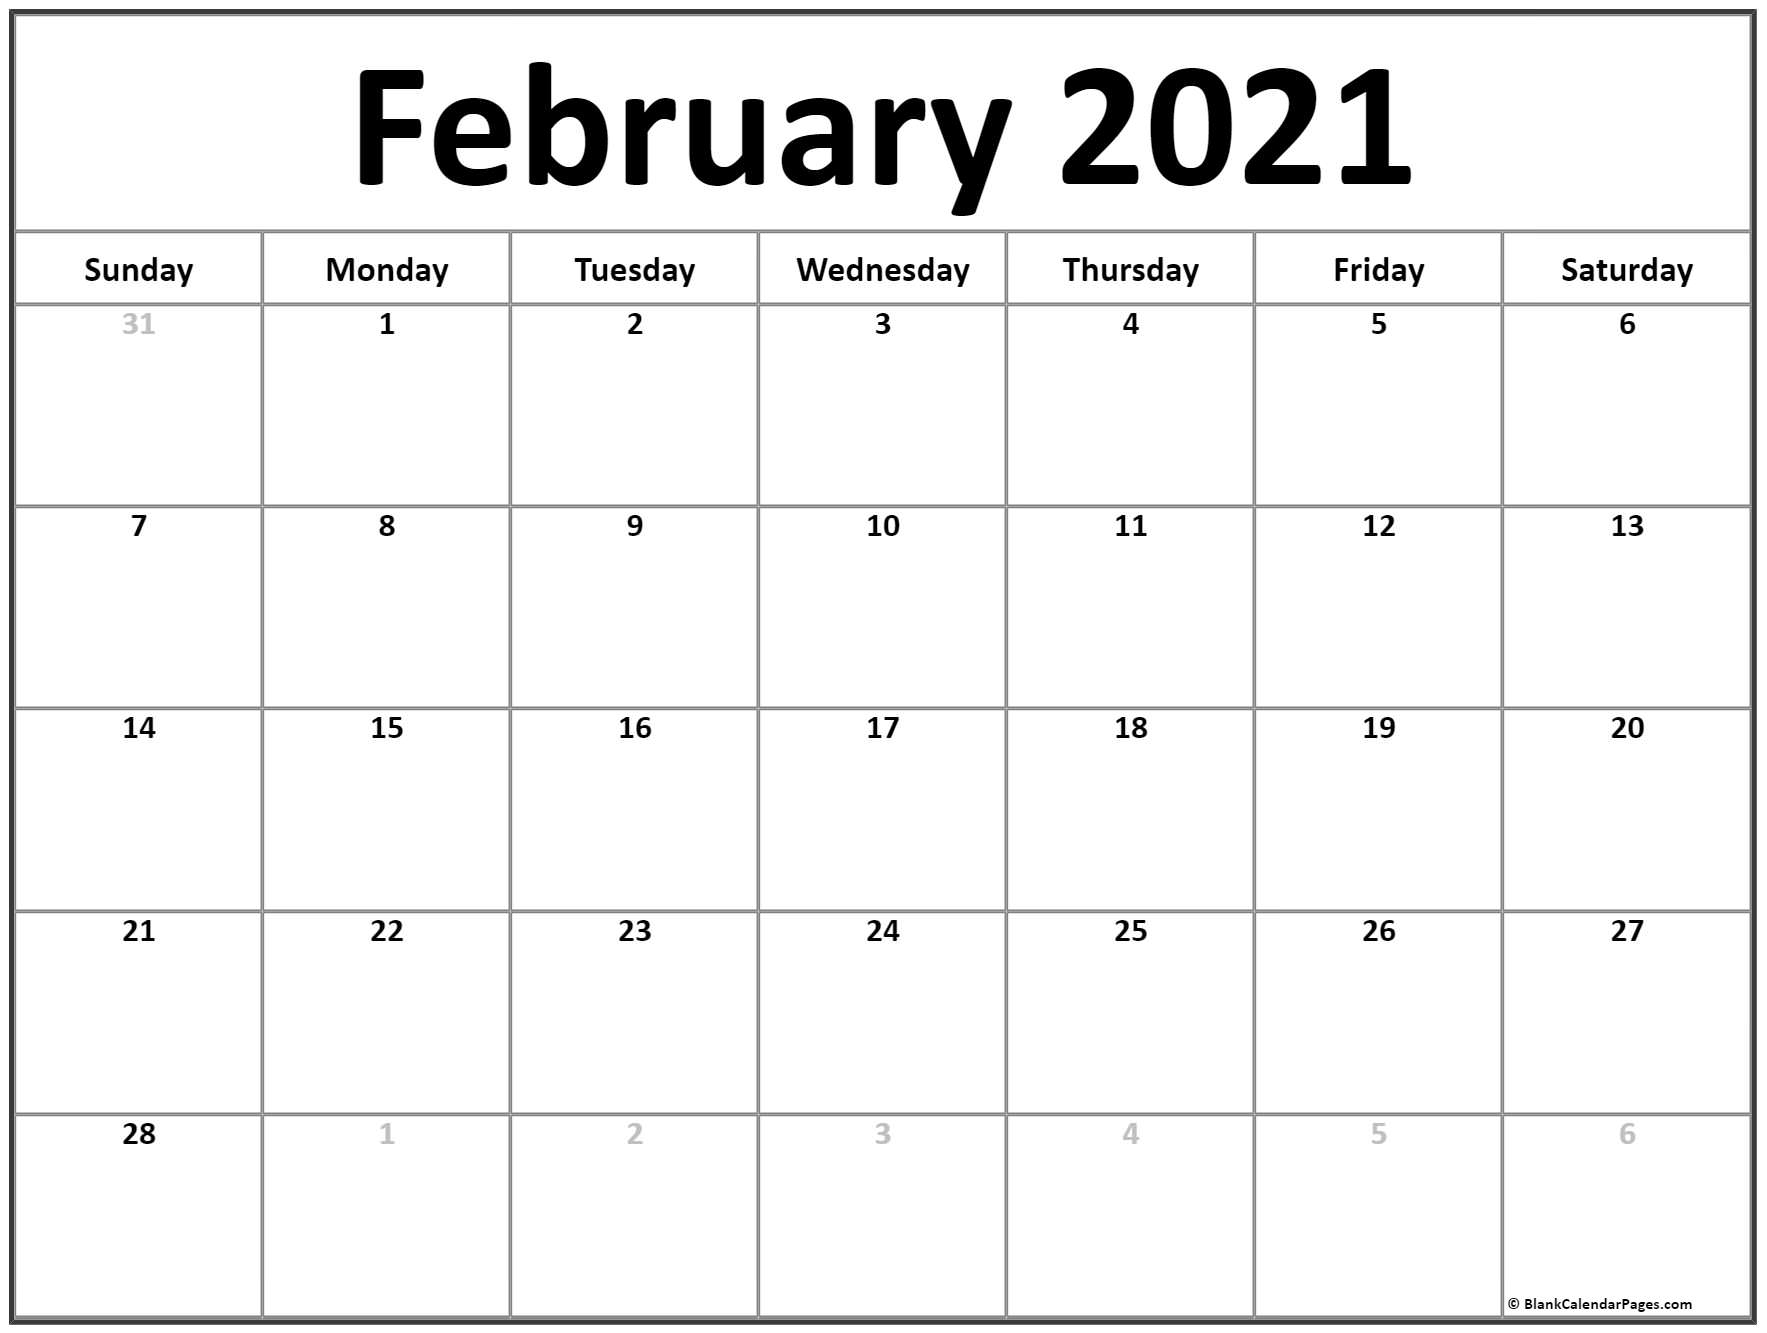 February 2021 Calendar | Free Printable Monthly Calendars regarding Fill In 2021 Calendar Pages Blank